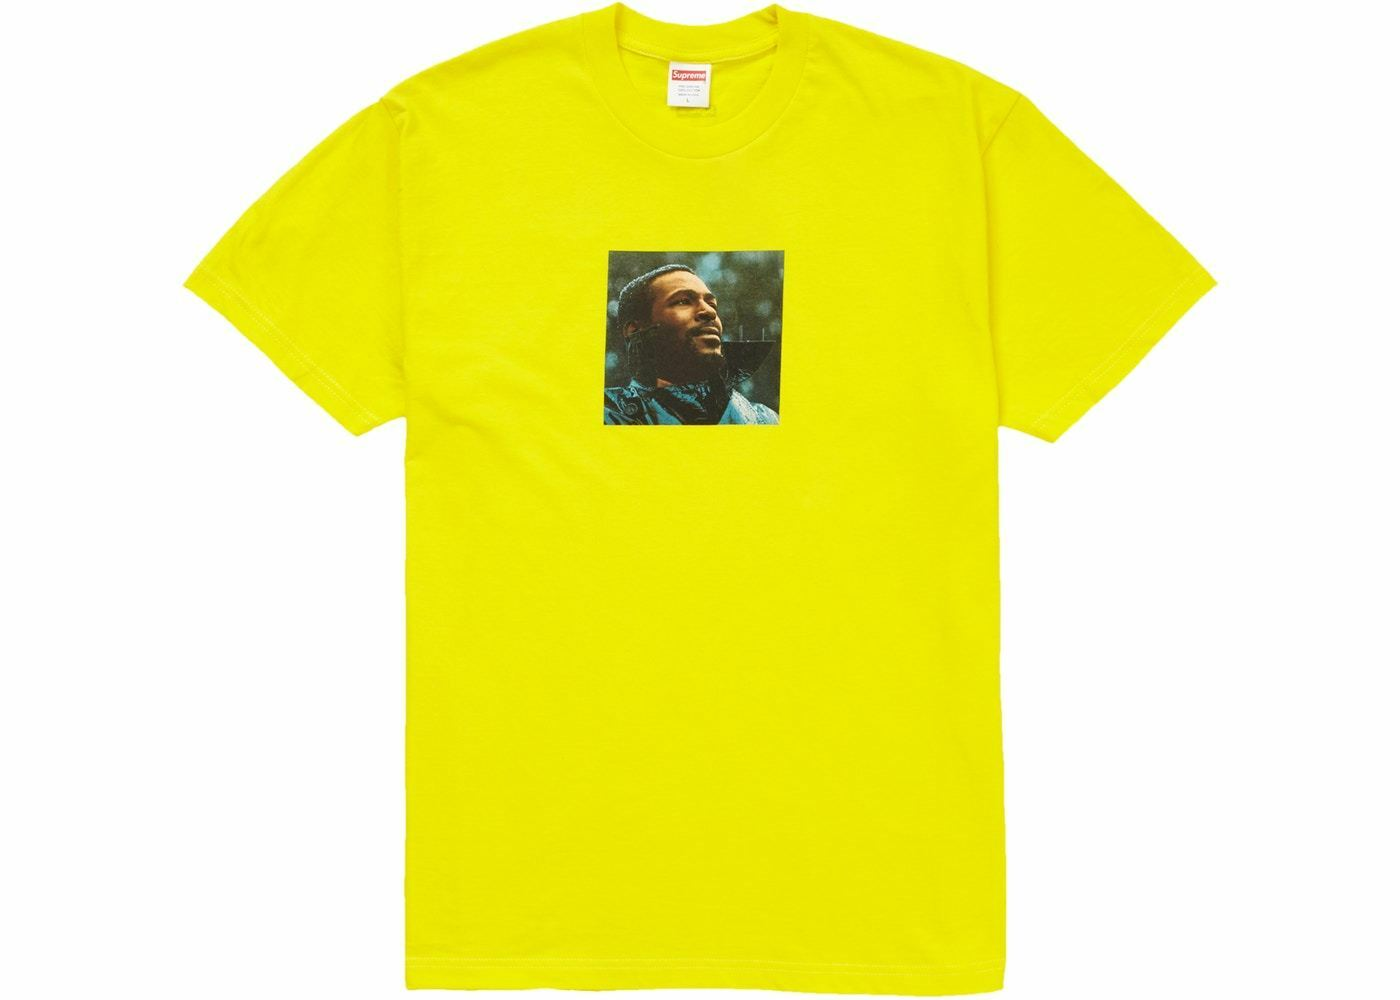 SUPREME MARVIN GAYE T-SHIRT YELLOW SIZE LARGE TEE TSHIRT IN HAND WHAT'S GOING ON